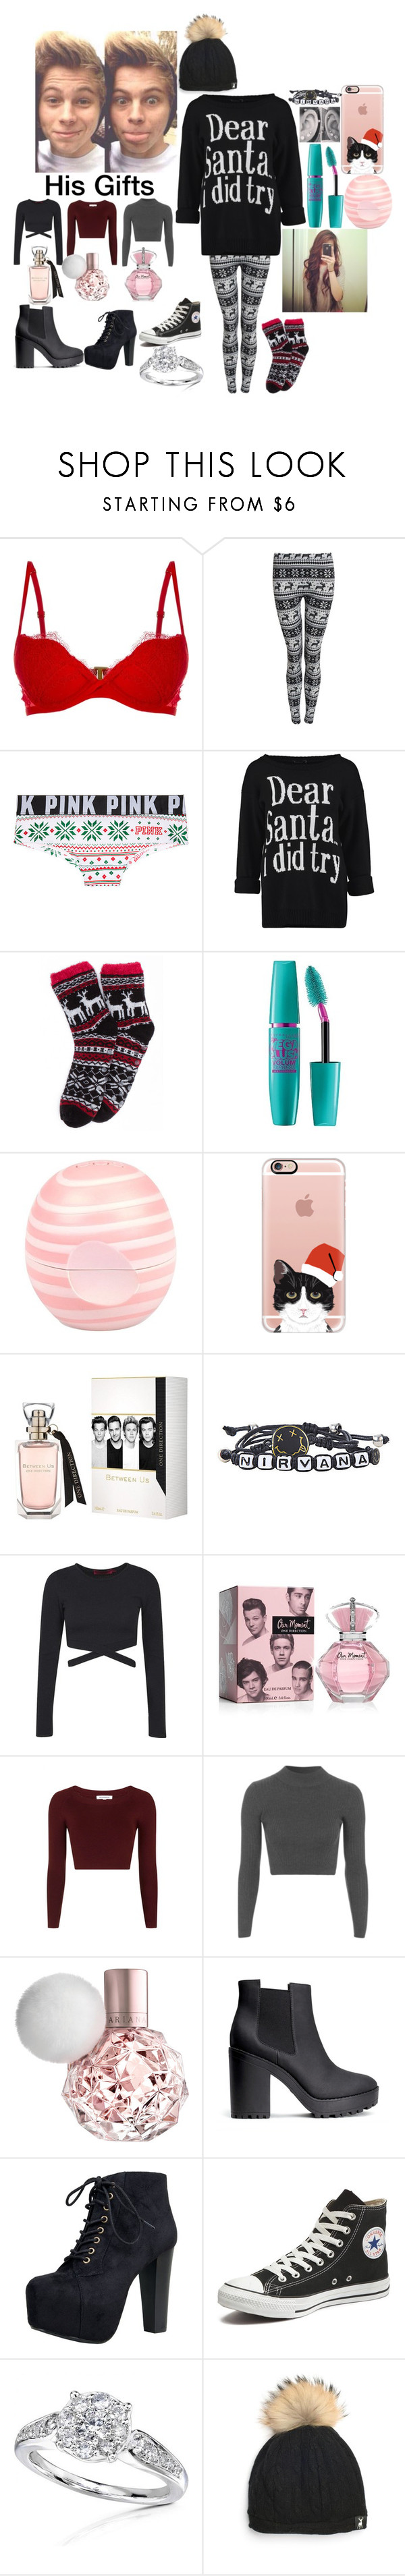 """""""Christmas with Luke"""" by infinitygangster ❤ liked on Polyvore featuring La Perla, Maybelline, River Island, Casetify, Boohoo, Topshop, H&M, Speed Limit 98, Converse and Allurez"""